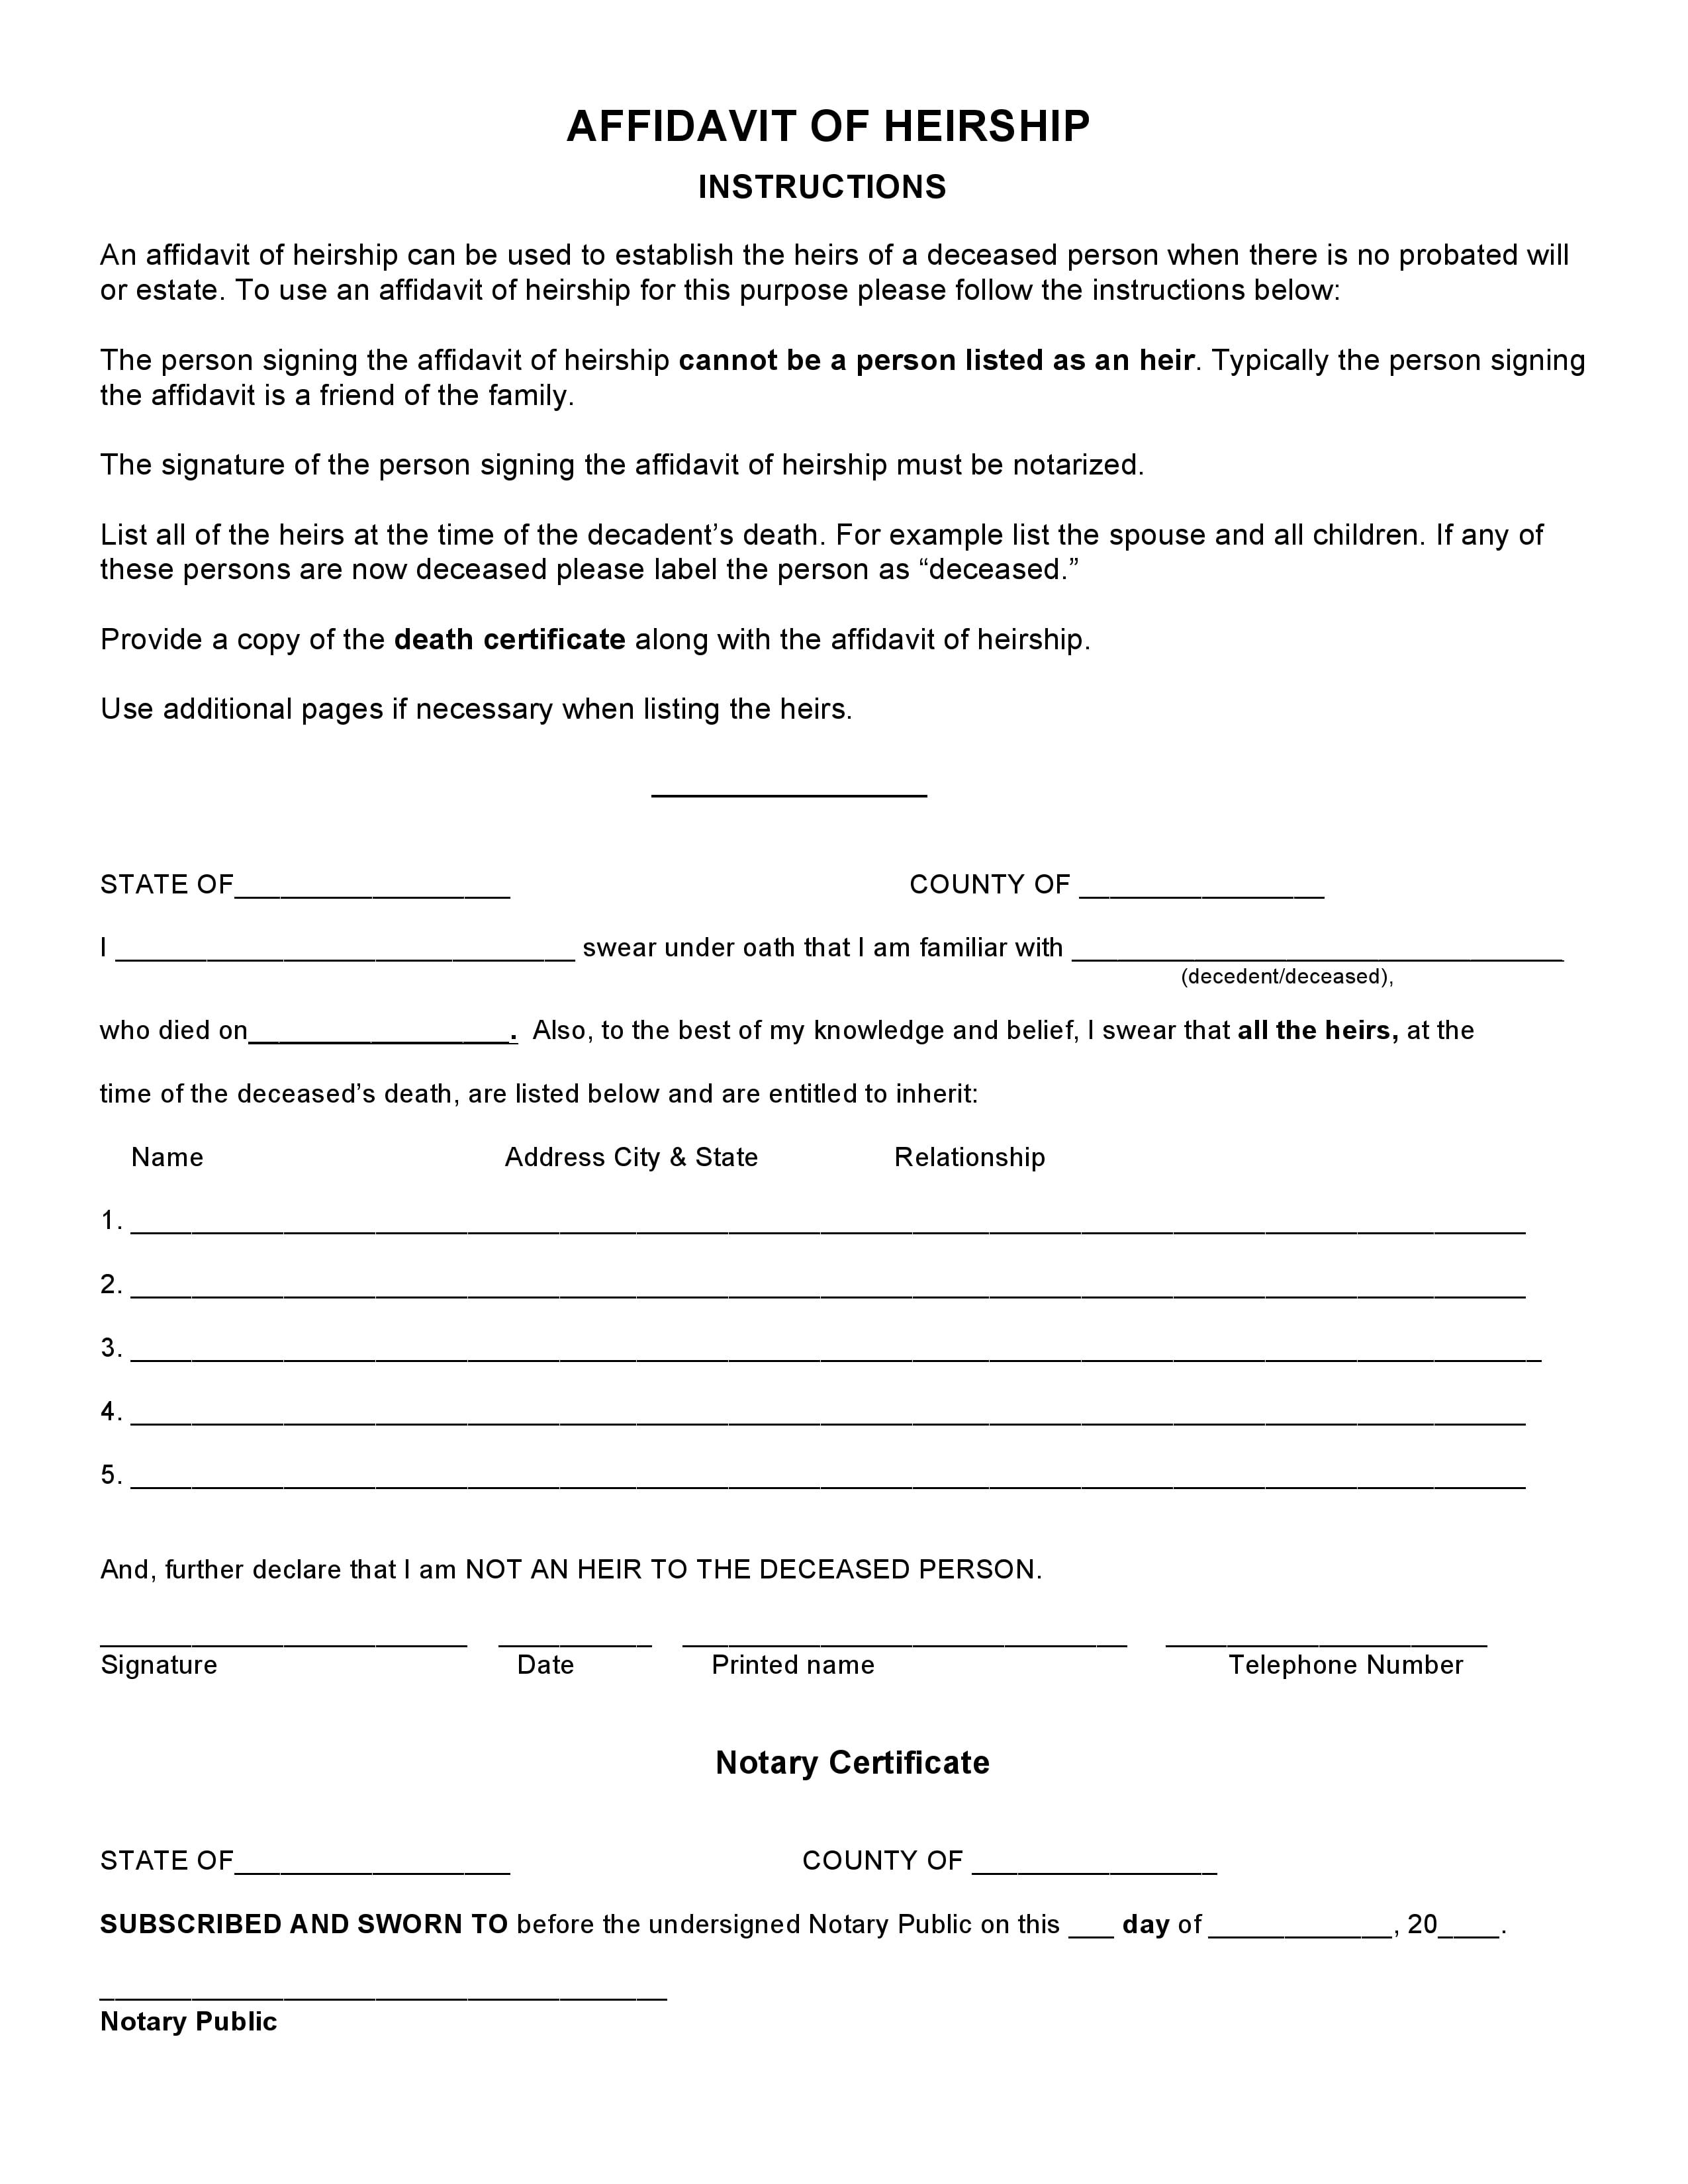 Arkansas Affidavit Of Heirship Forms